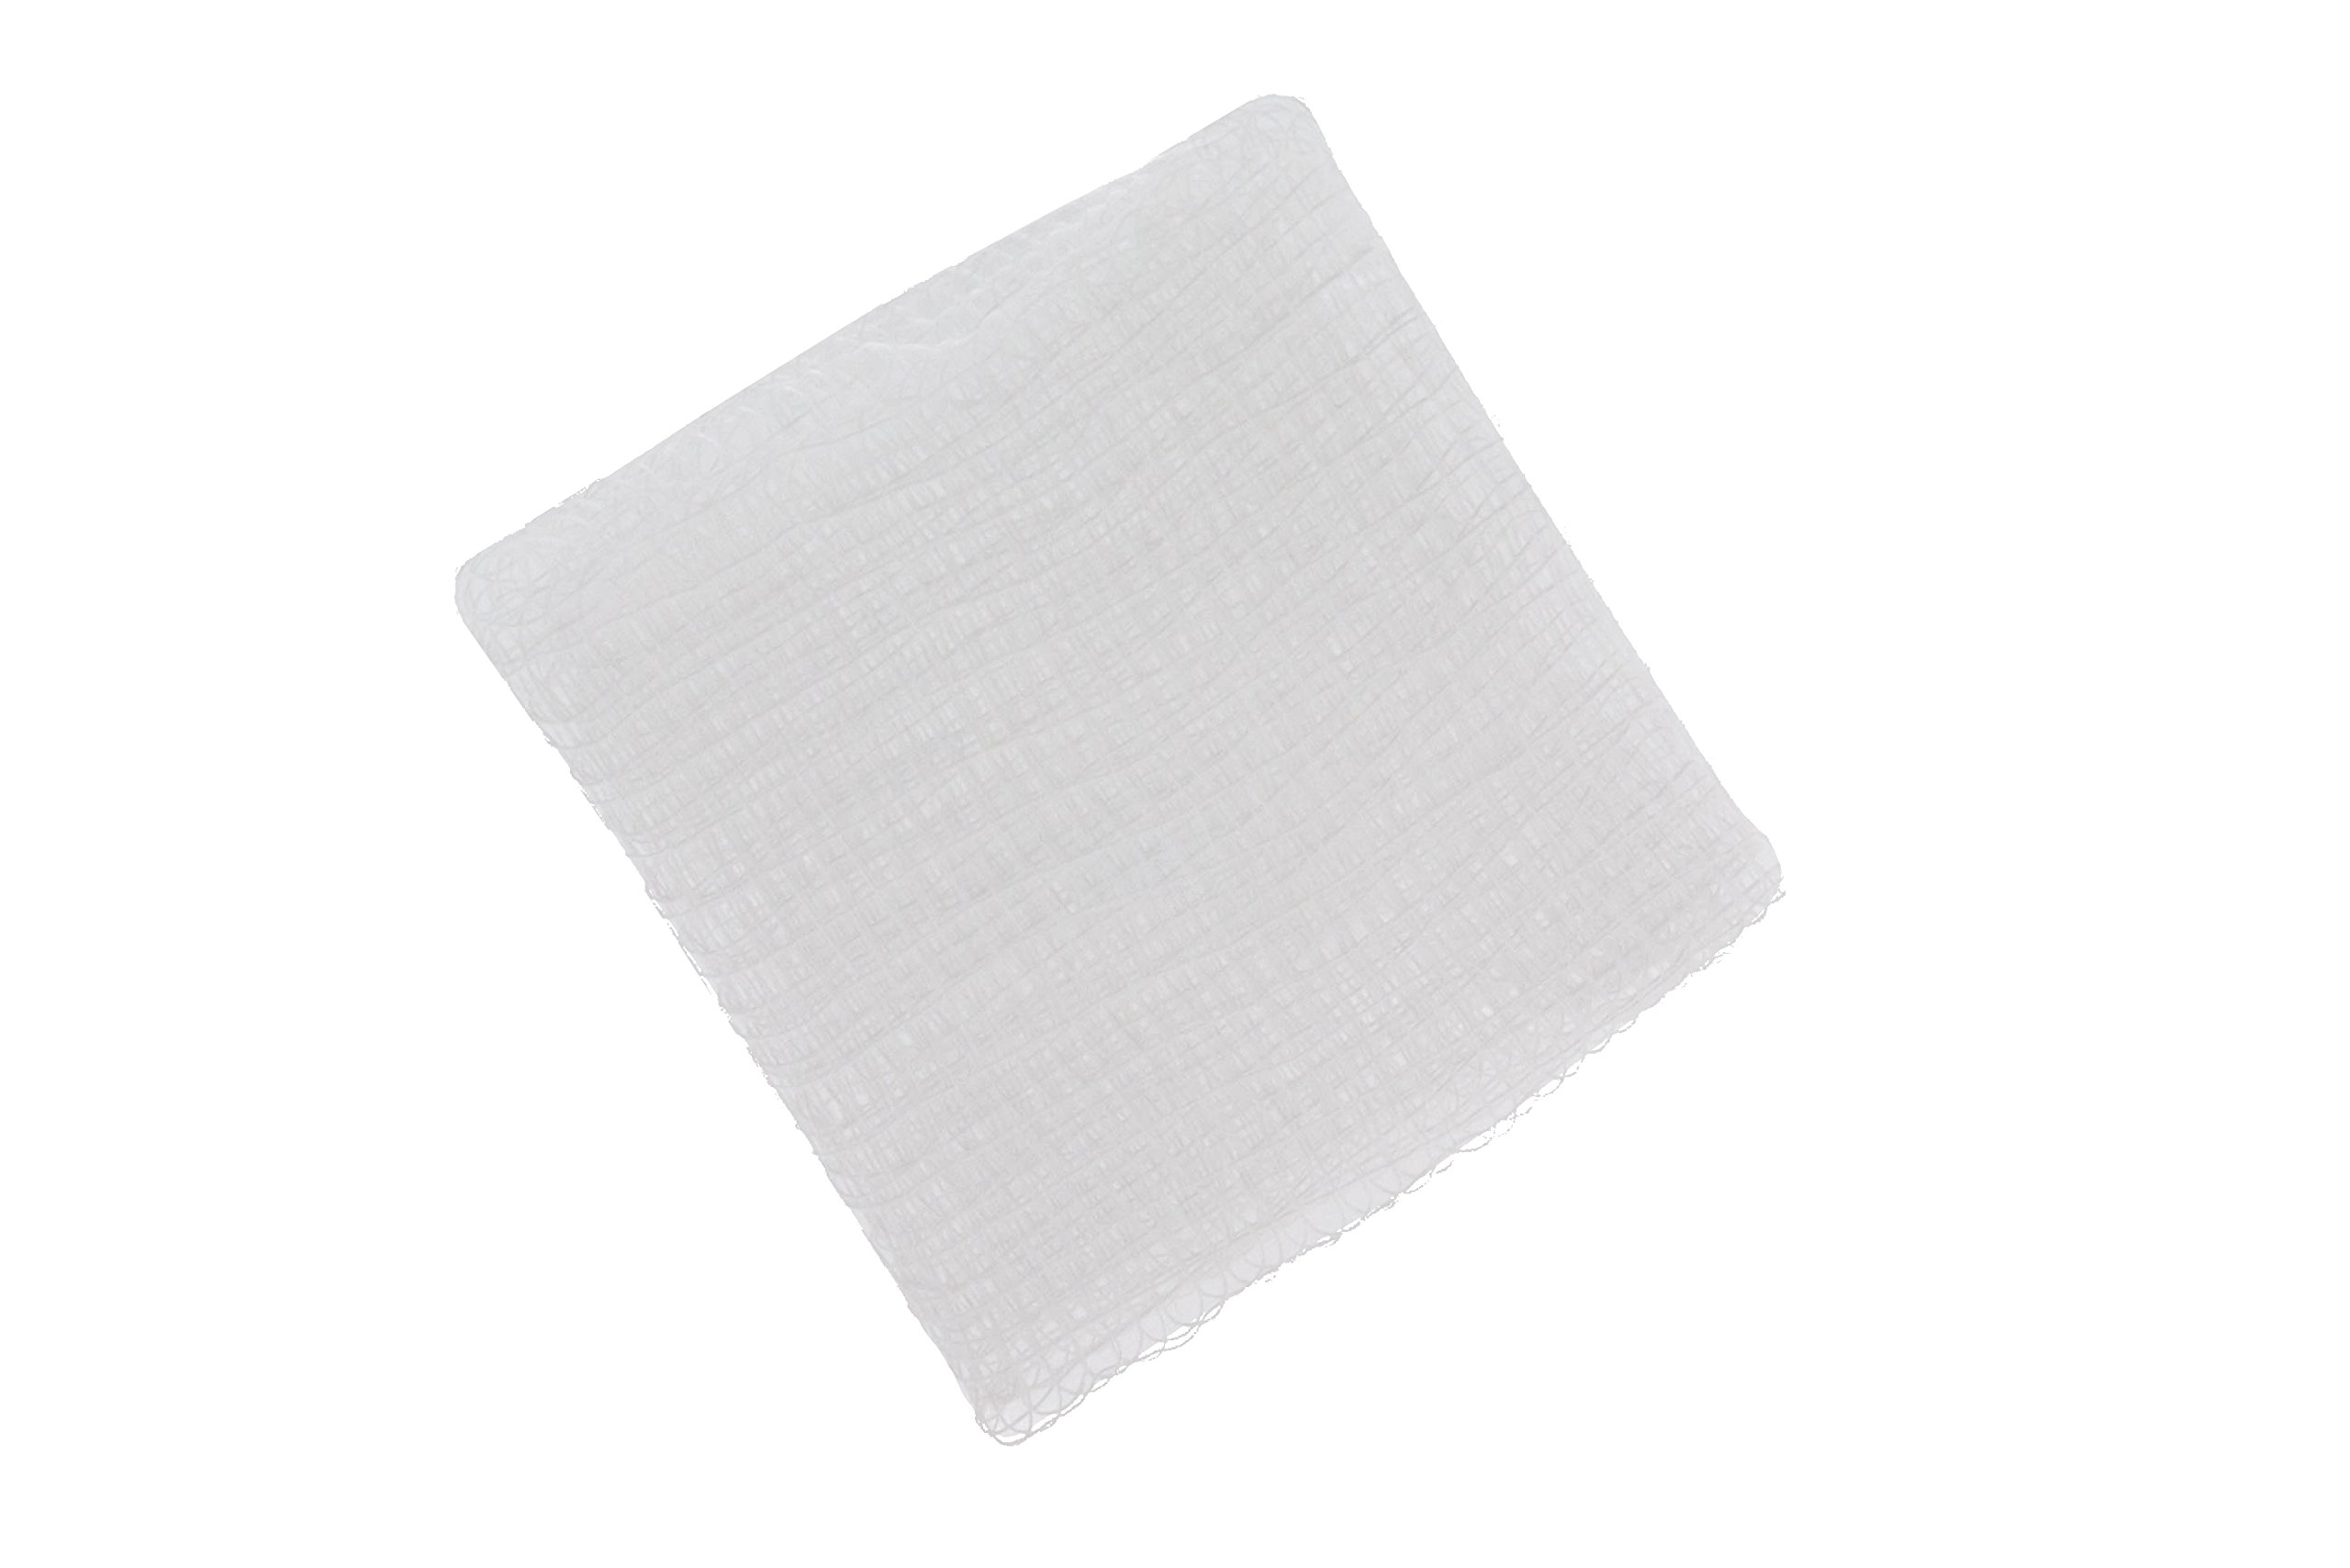 American White Cross 11124 Gauze Fluffs, Non-Sterile, 30'' x 18'', Large 1-Ply, 50/Bag, 10 Bag/Case (Pack of 500)